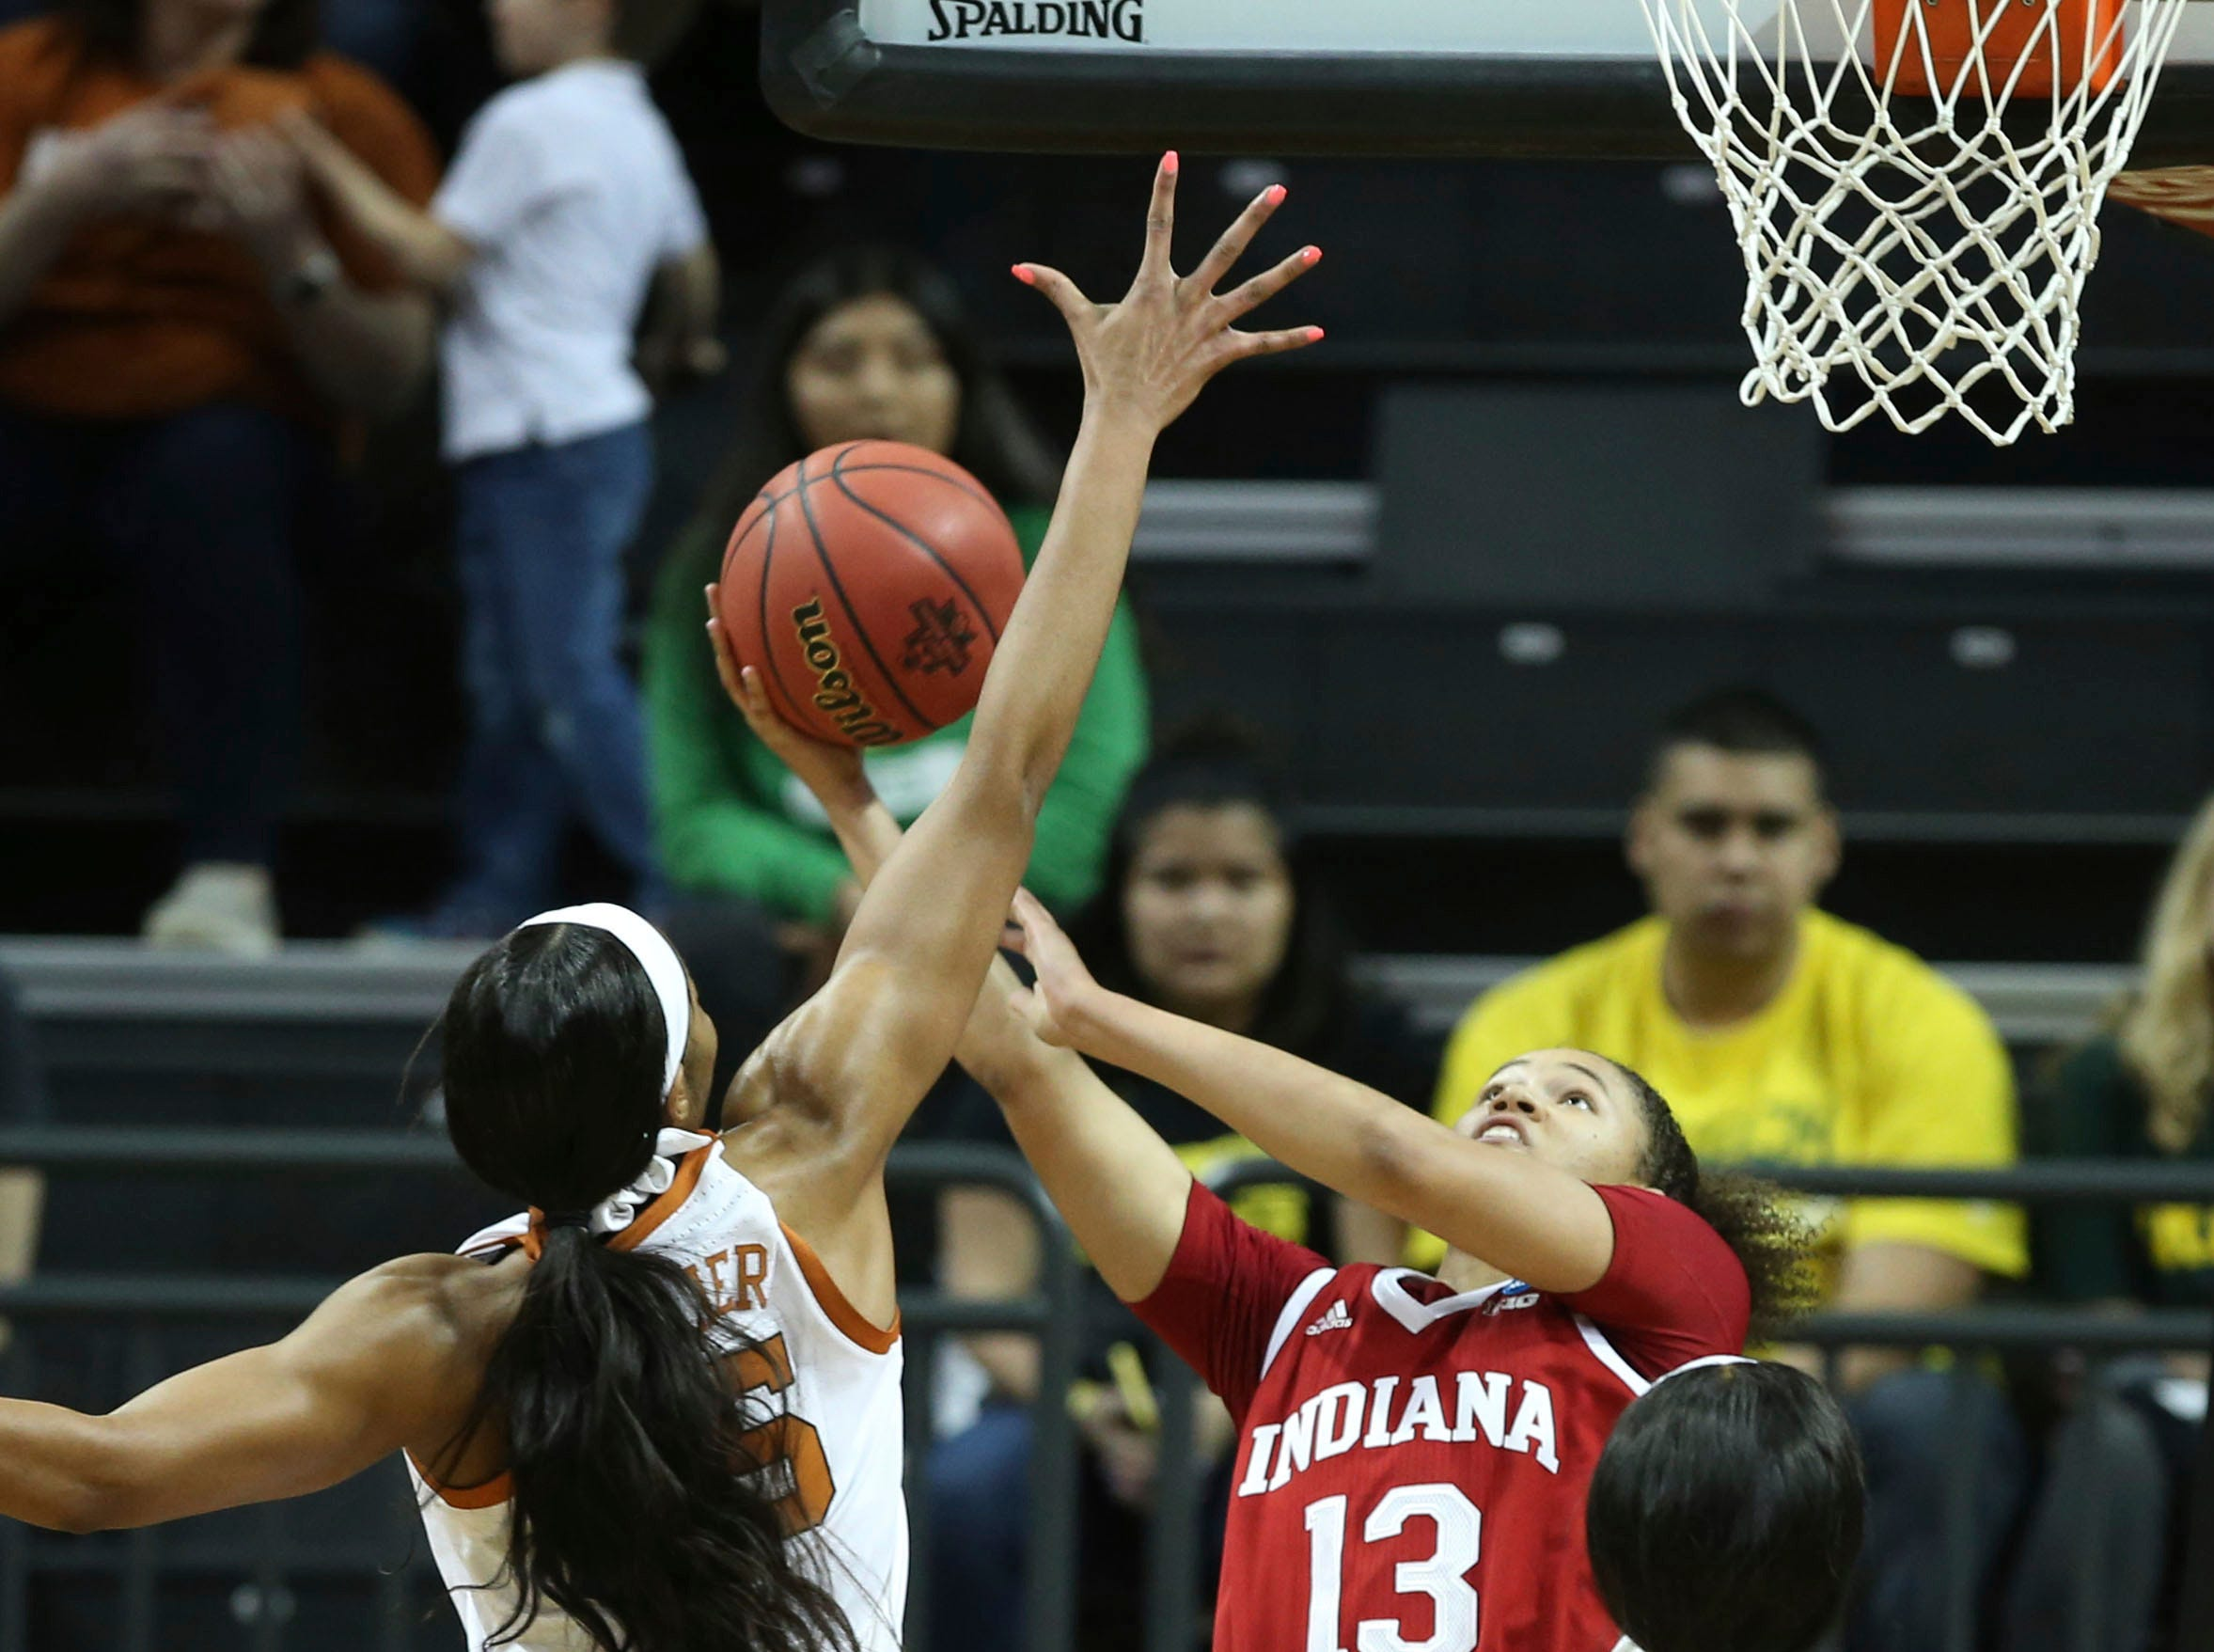 Texas Charli Collier, left, swats a shot by Indiana's Jaelynn Penn during the second quarter of a first-round game in the NCAA women's college basketball tournamentFriday, March 22, 2019, in Eugene, Ore.